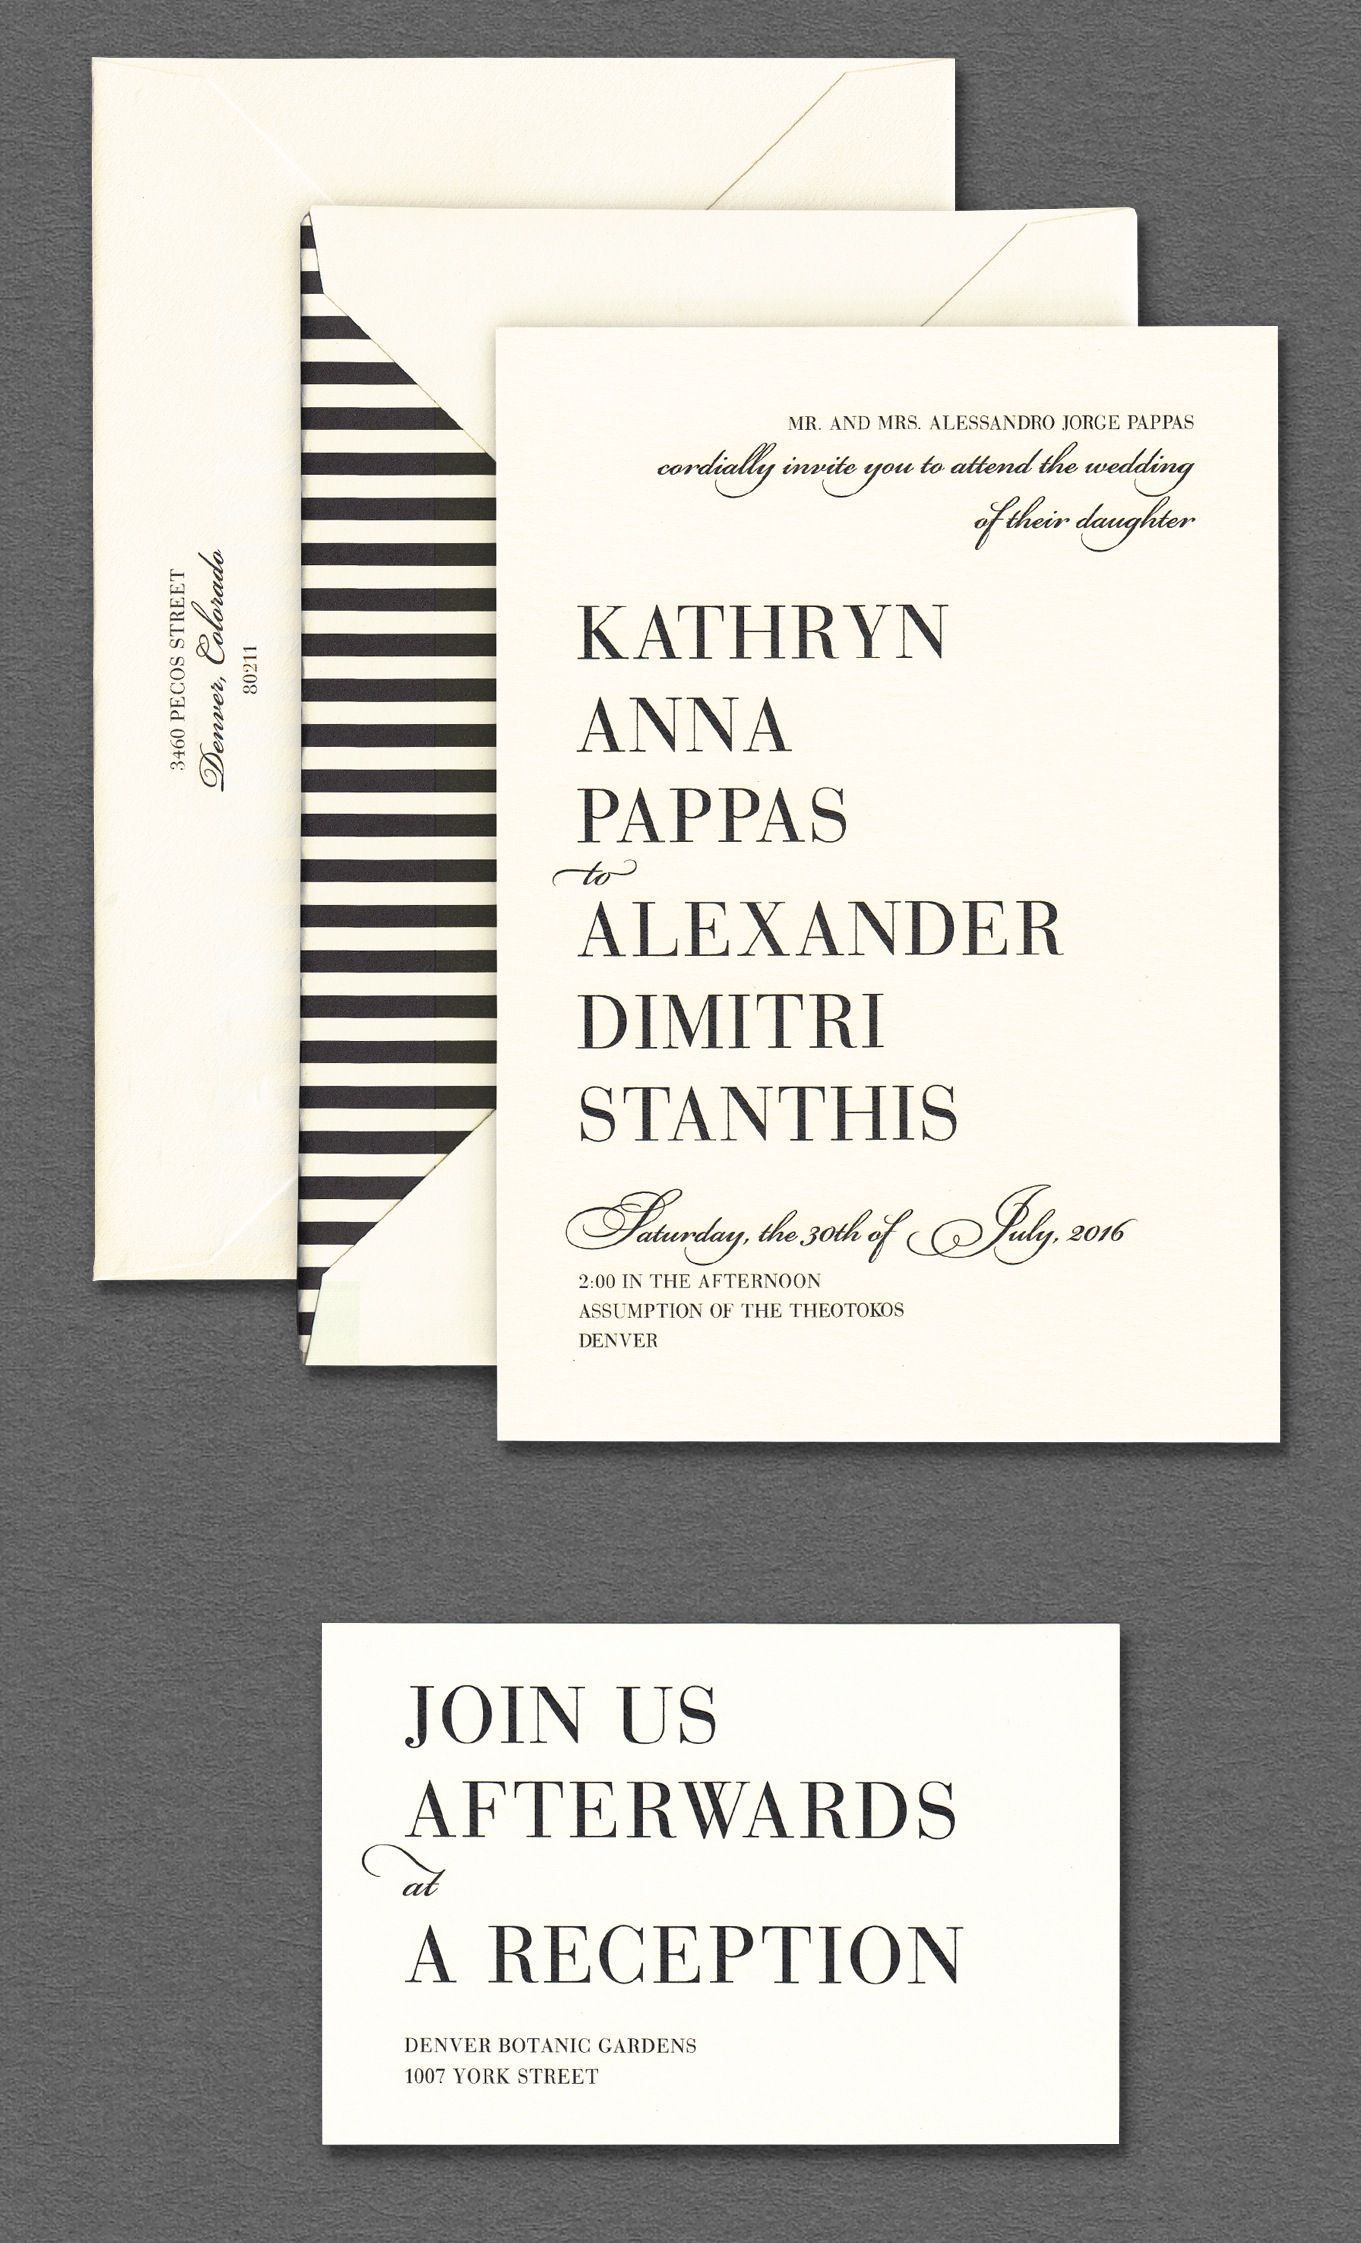 Vera Wang Oyster Wedding Invitation With Black And White Striped Envelope  Lining.